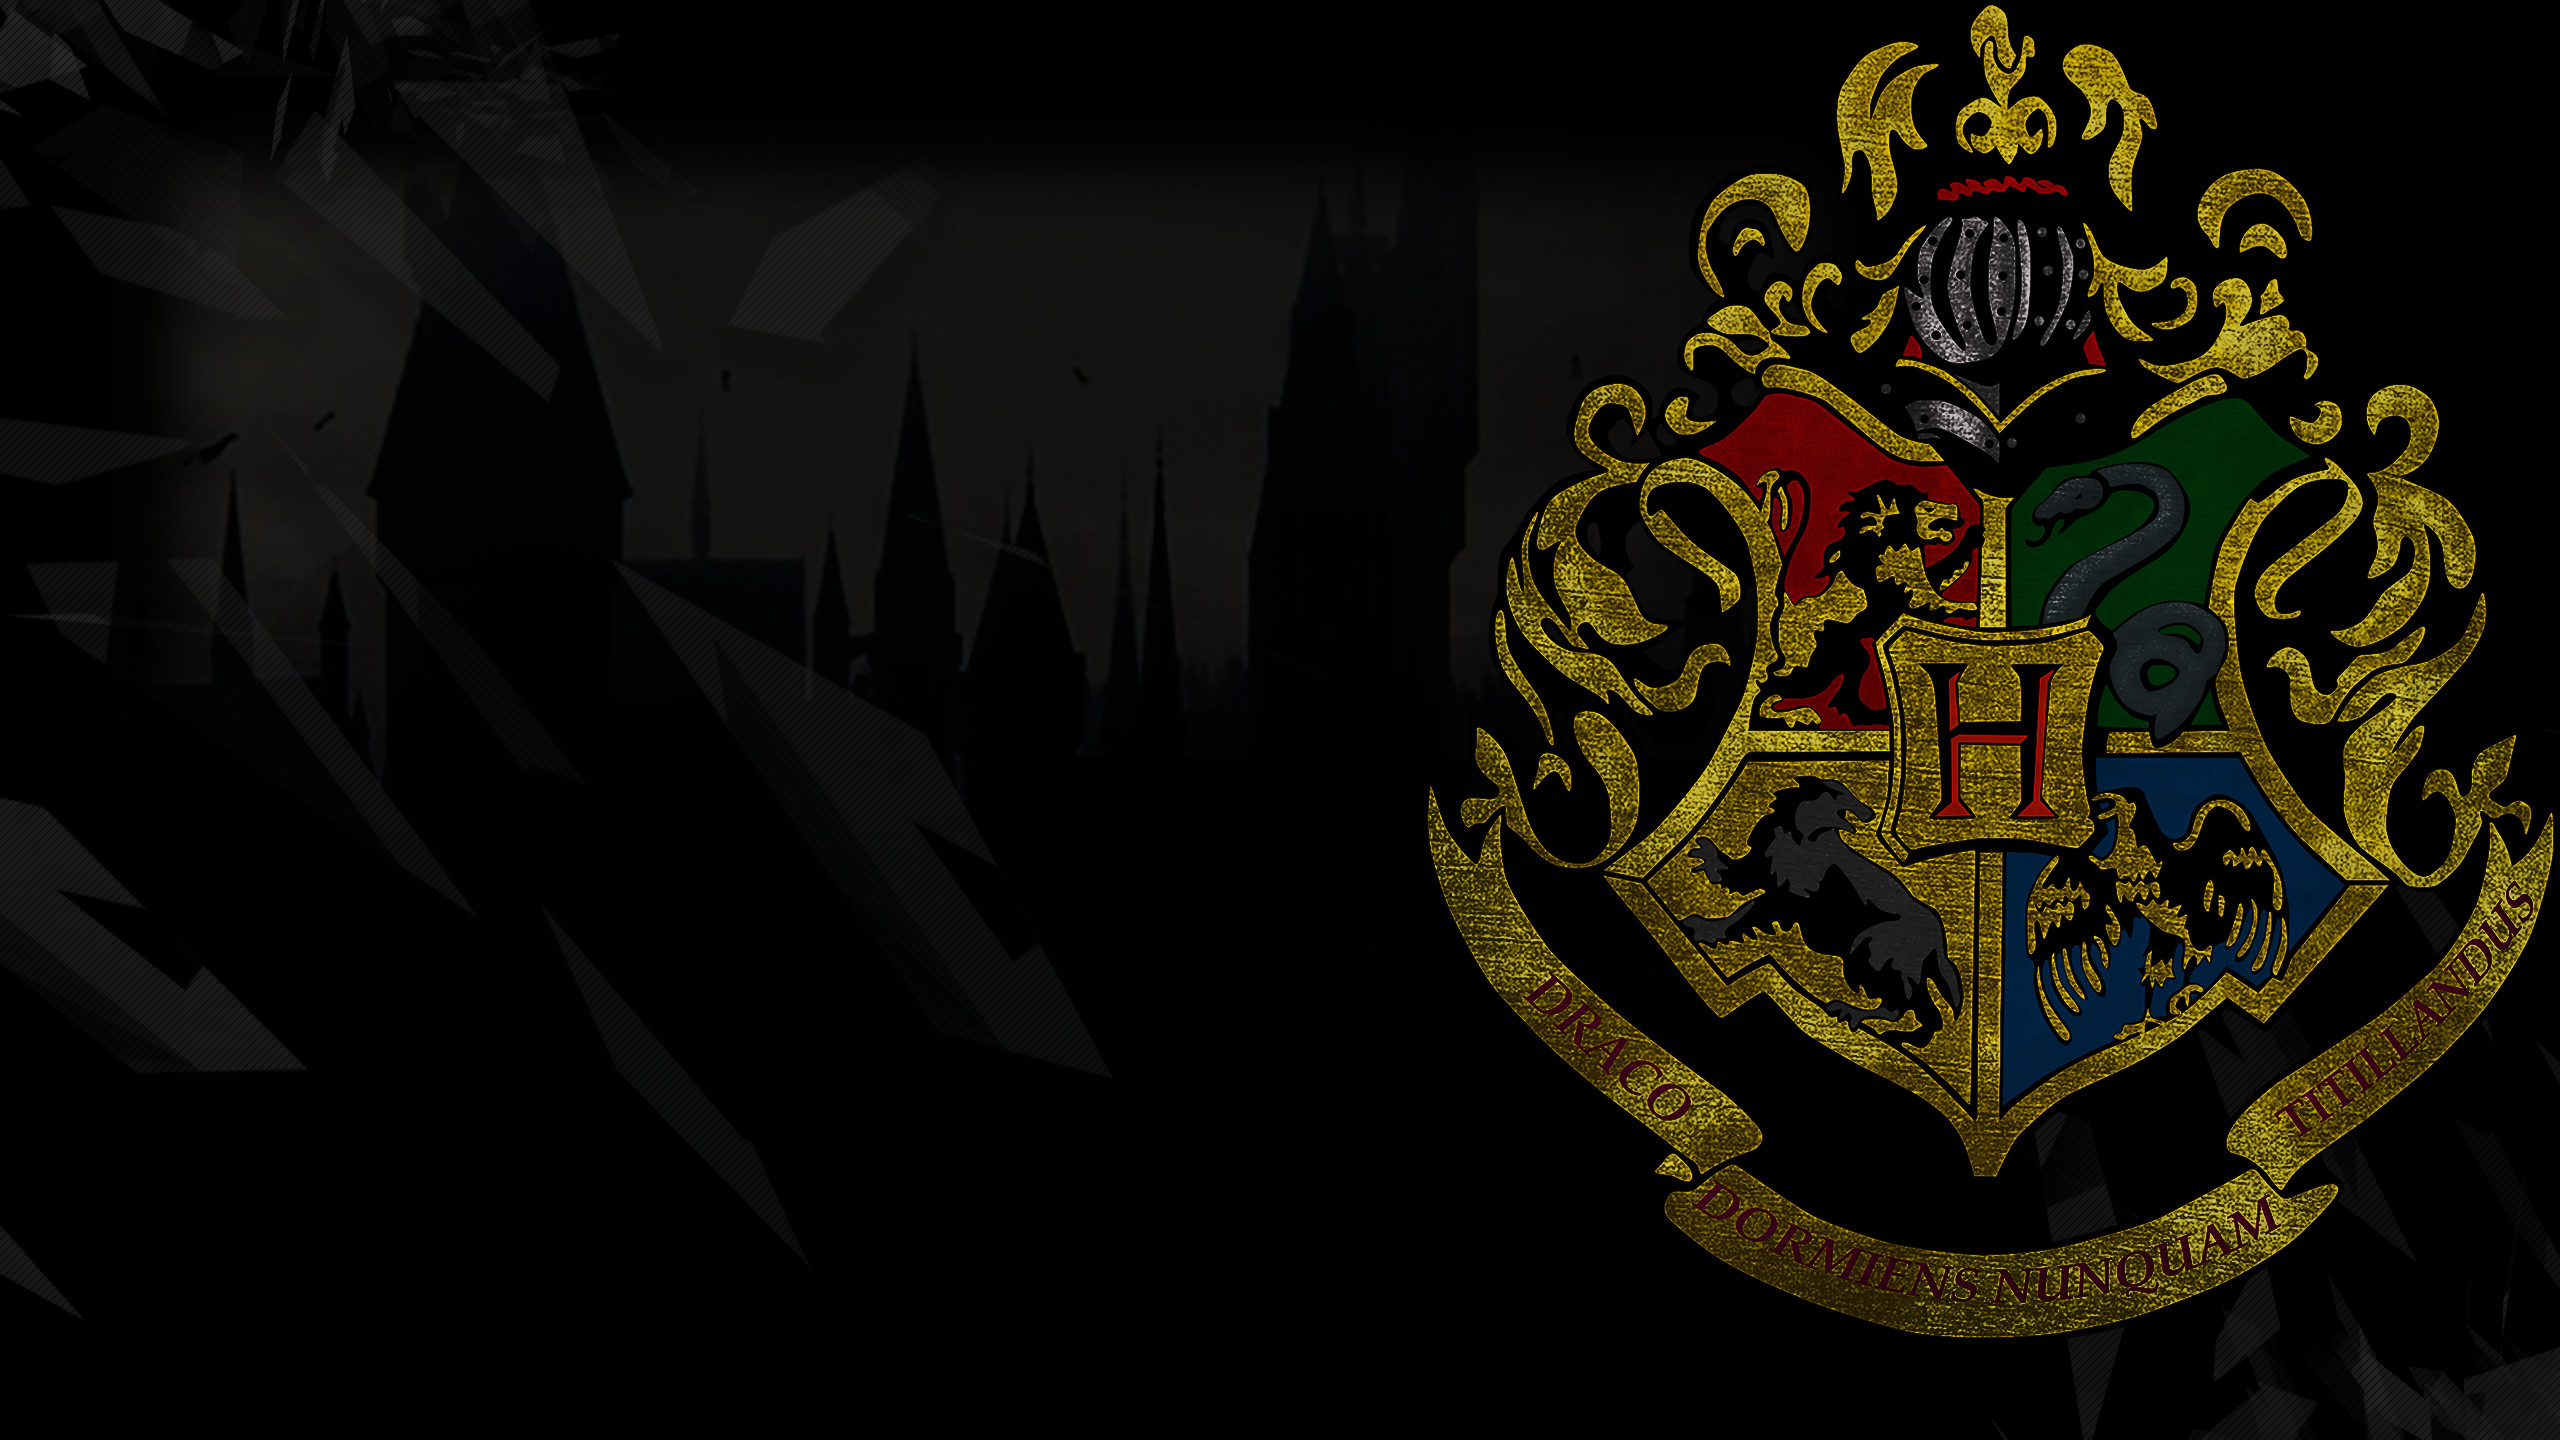 Fantastic Wallpapers With Quotes Harry Potter Hogwarts Wallpaper 65 Images